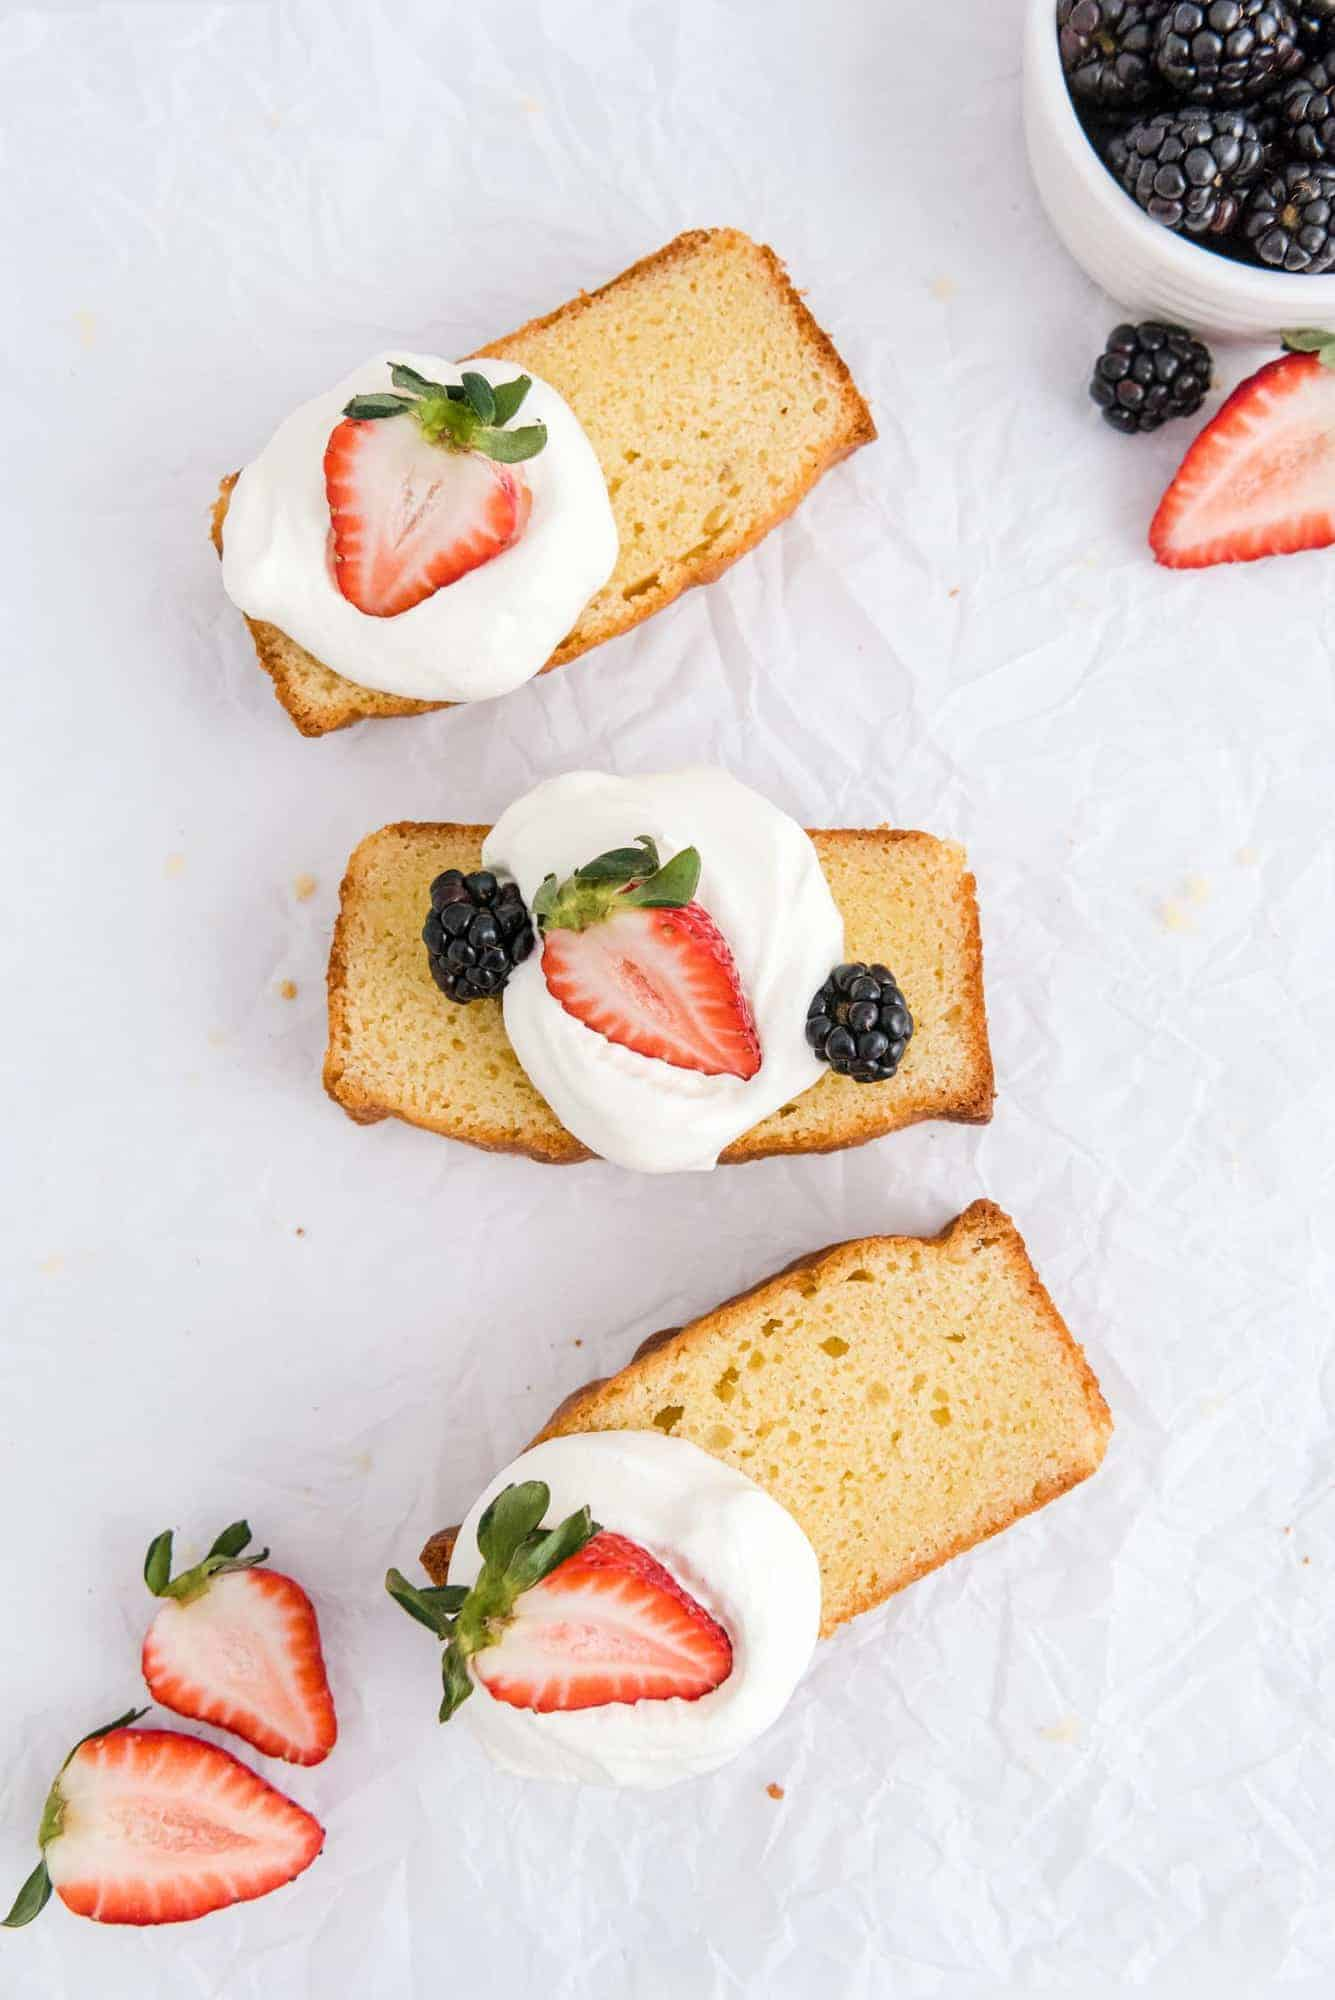 Cake slices on a white background.